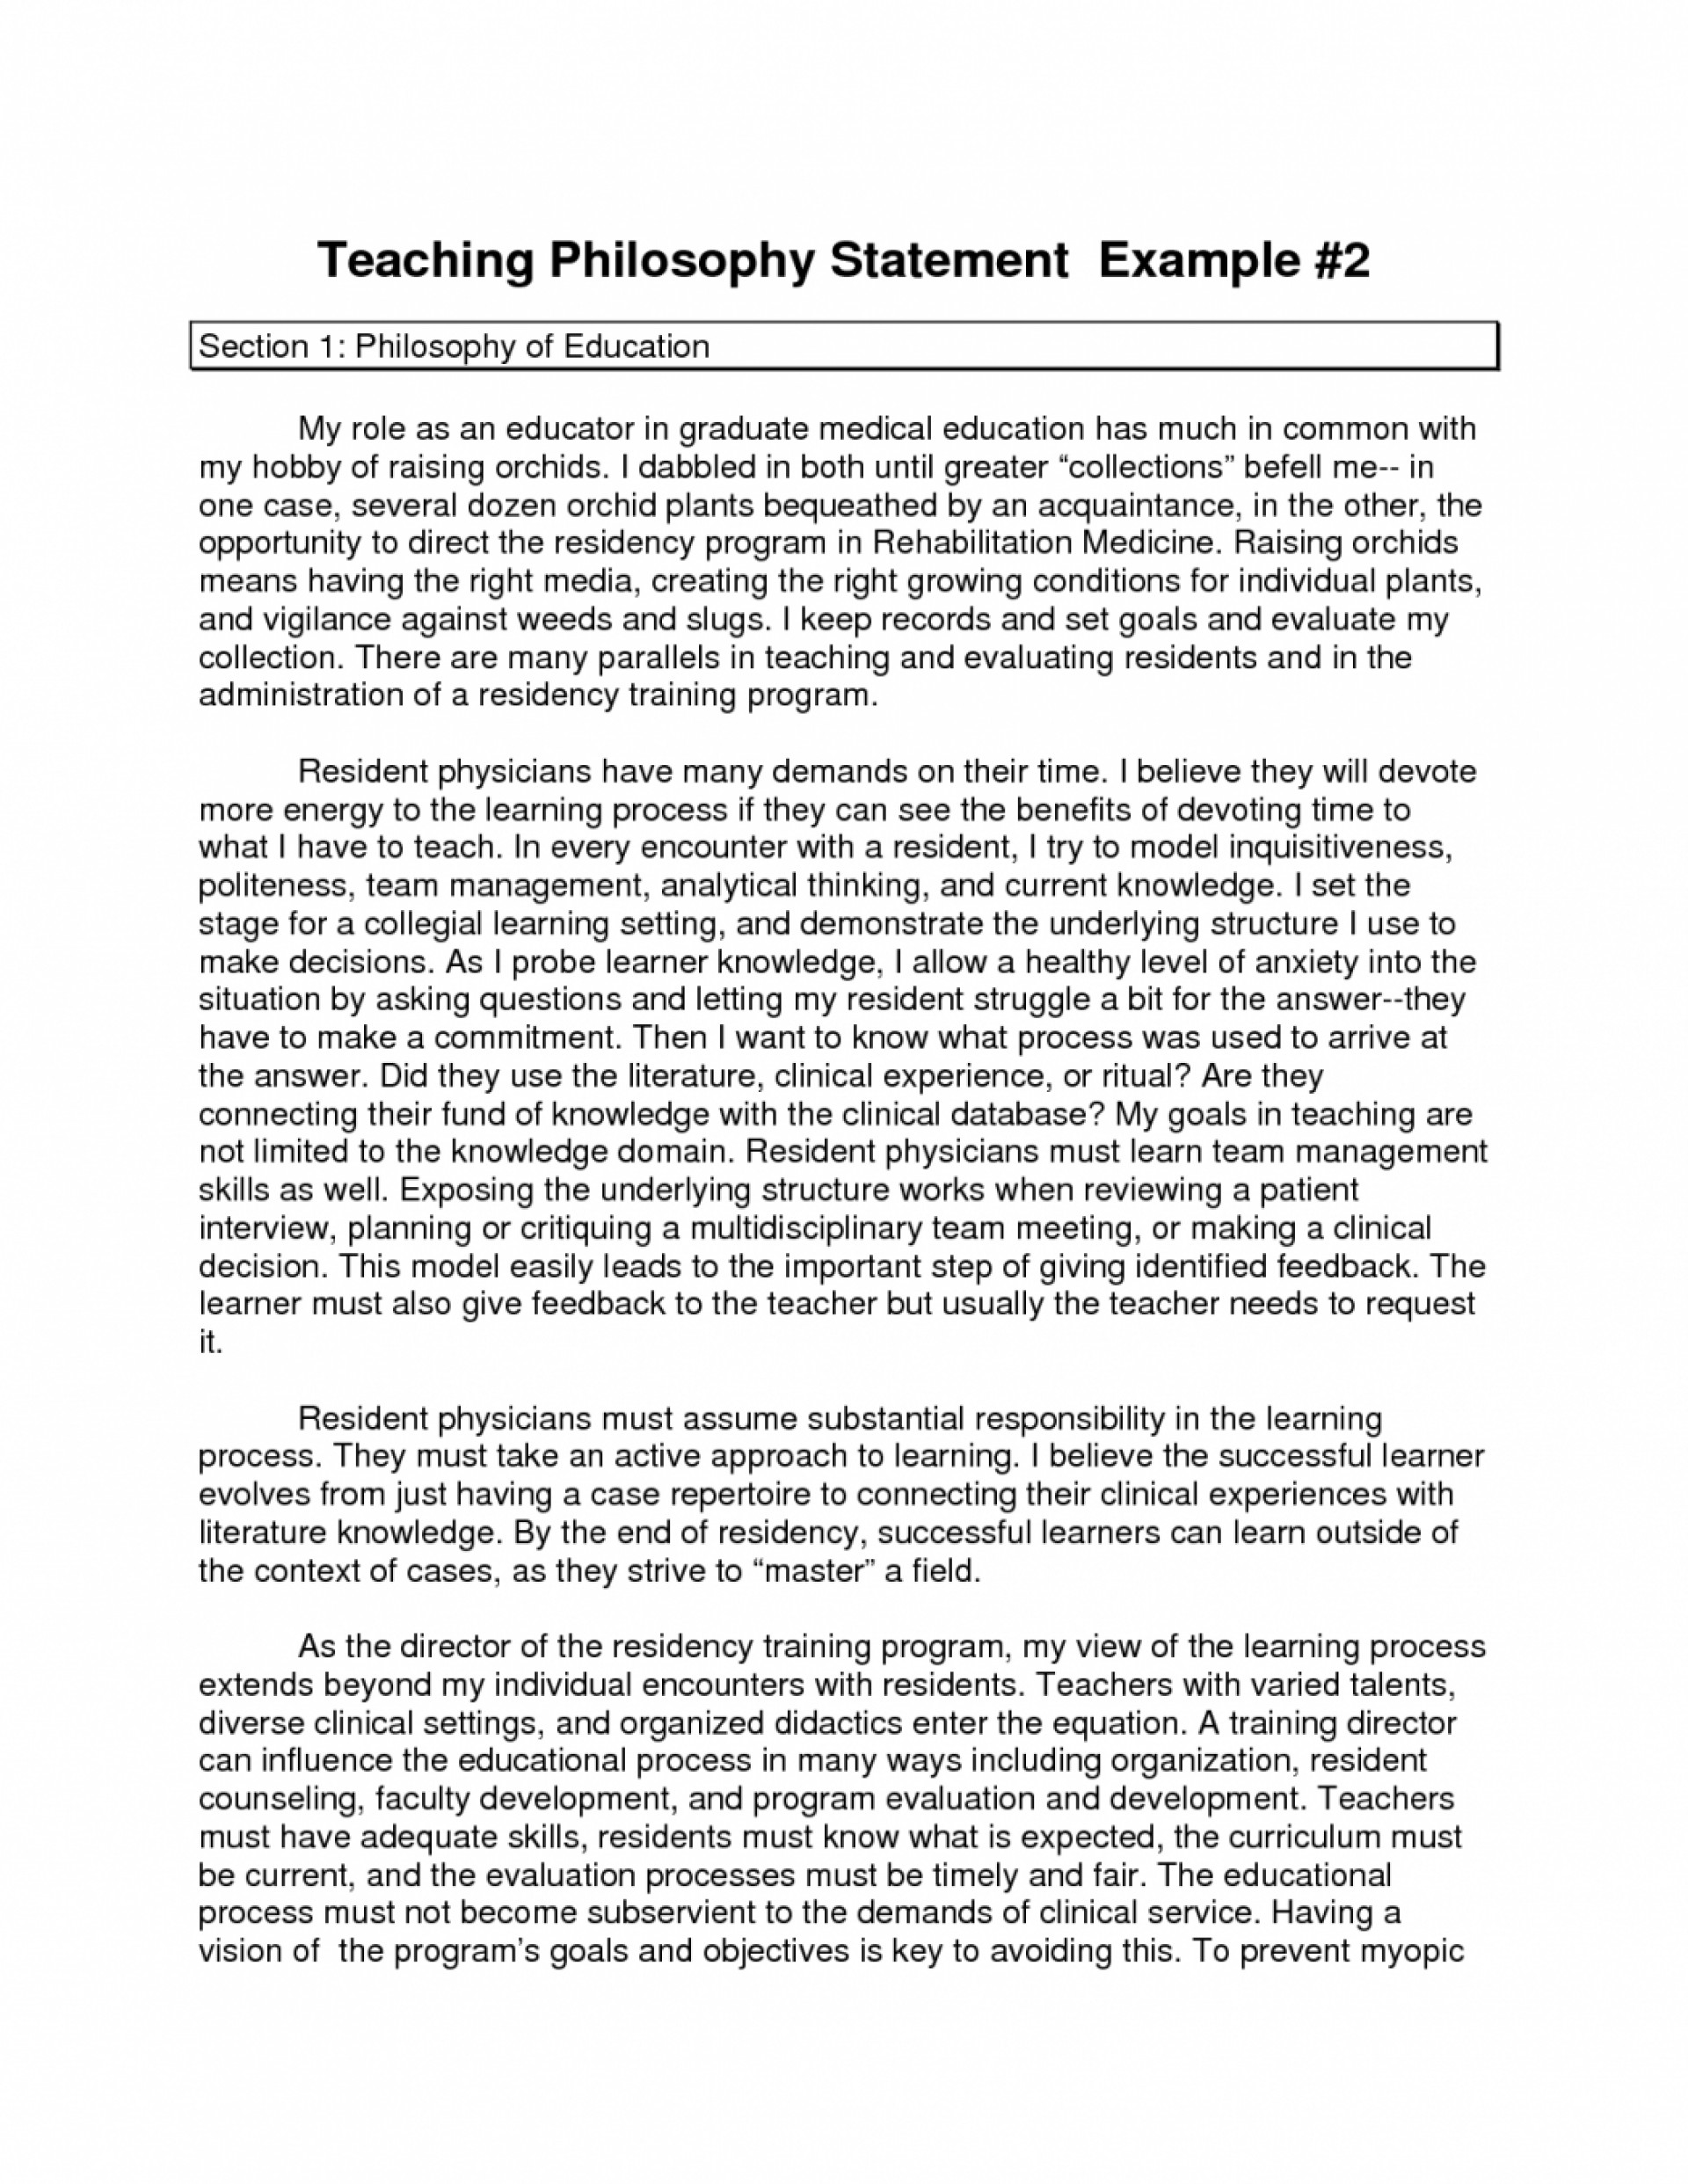 007 Exploratory Essay Example Definition Writing An Introduction Examples Statement Of Teaching Philosophy Mg5 Free Thesis Topics Research Remarkable Outline 1920